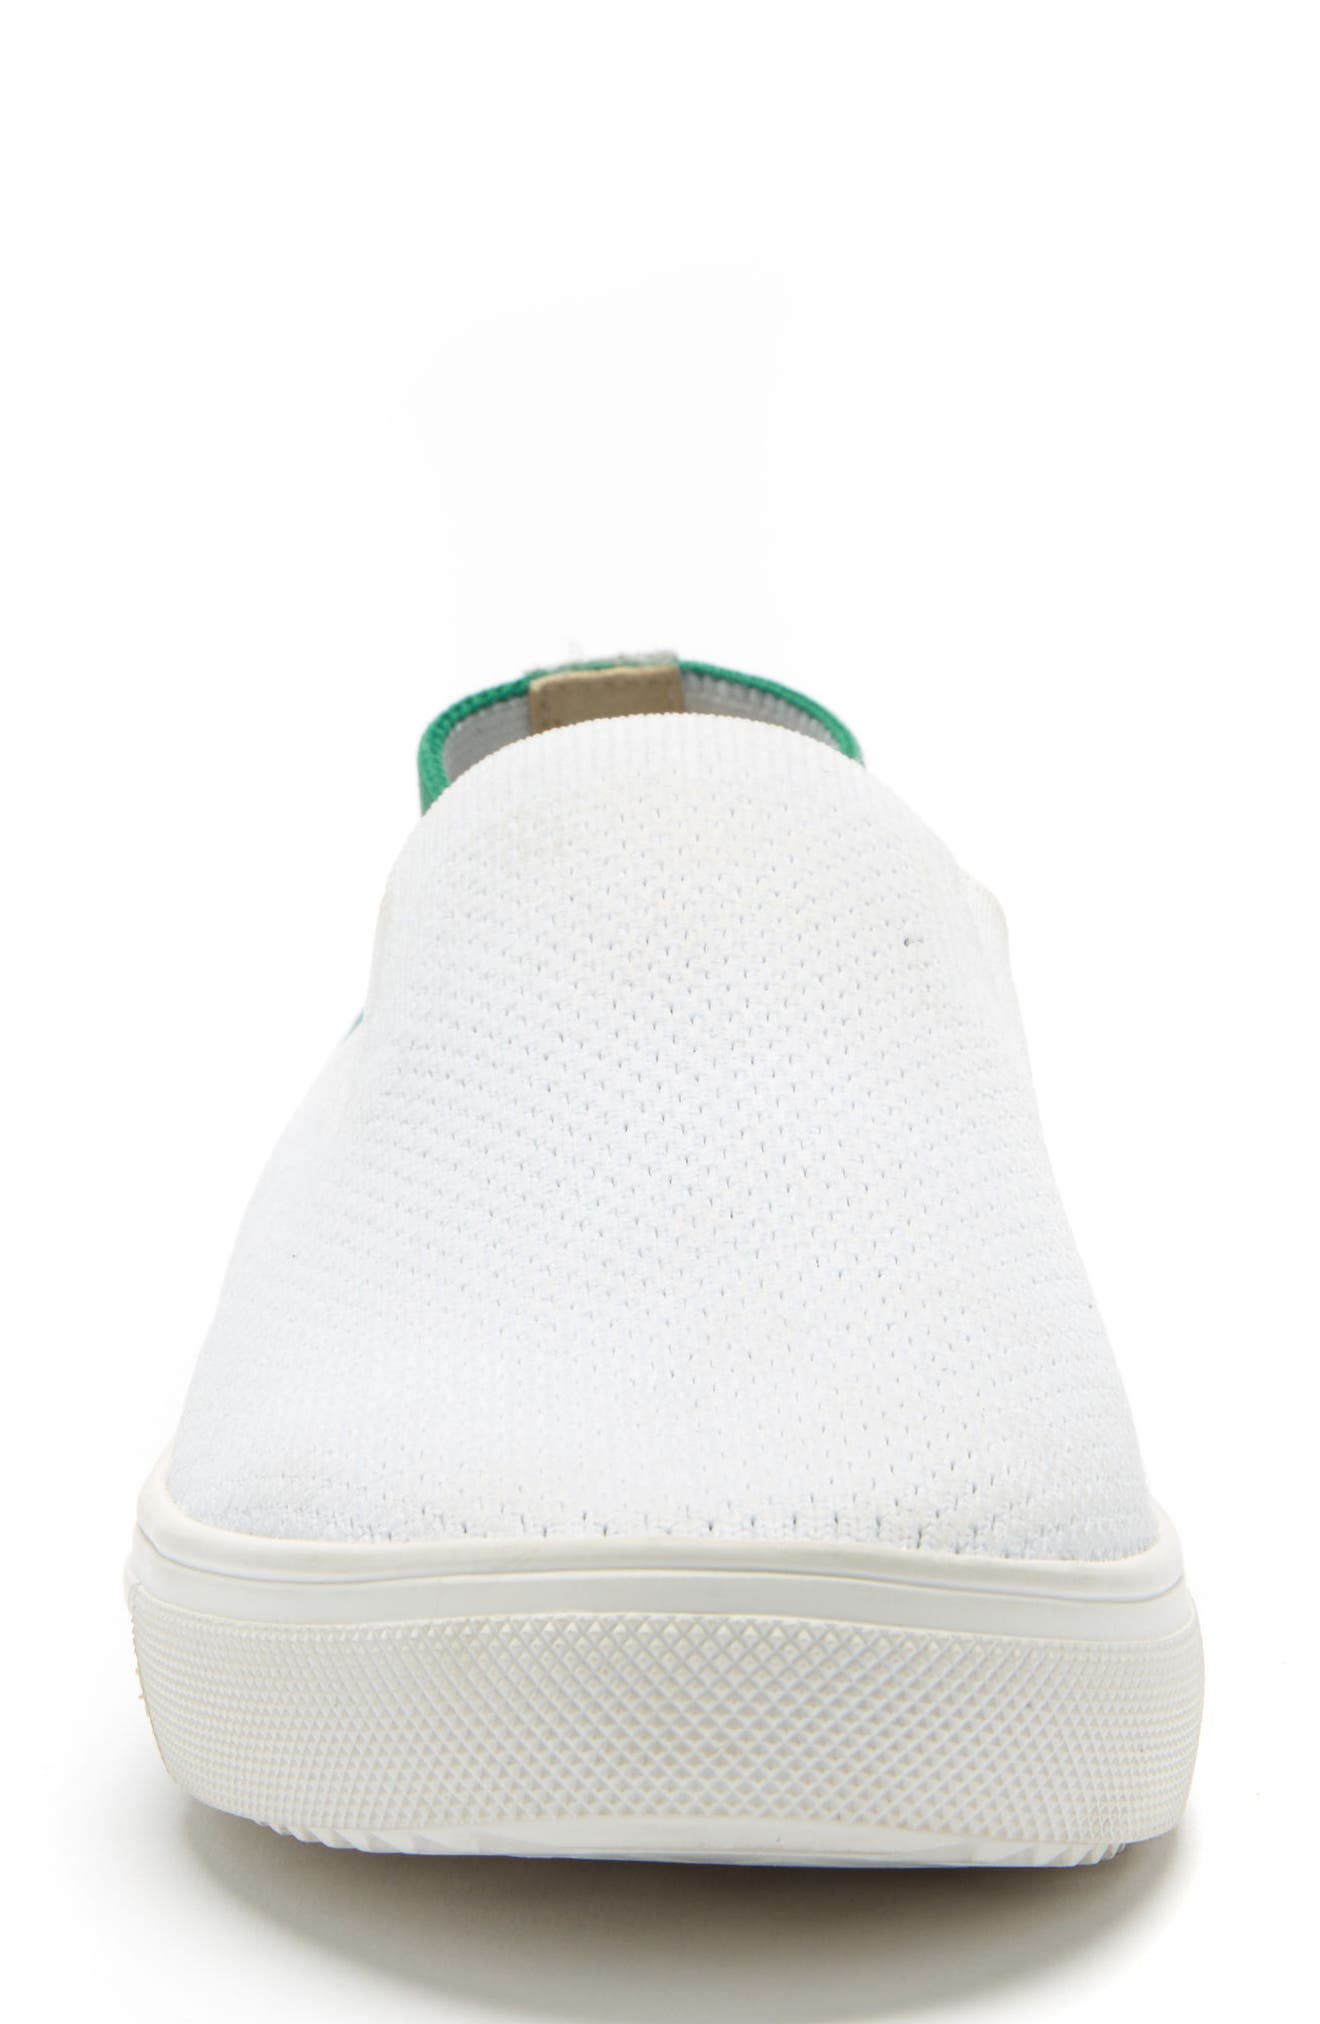 Gina Waterproof Sneaker,                             Alternate thumbnail 4, color,                             White And Green Fabric